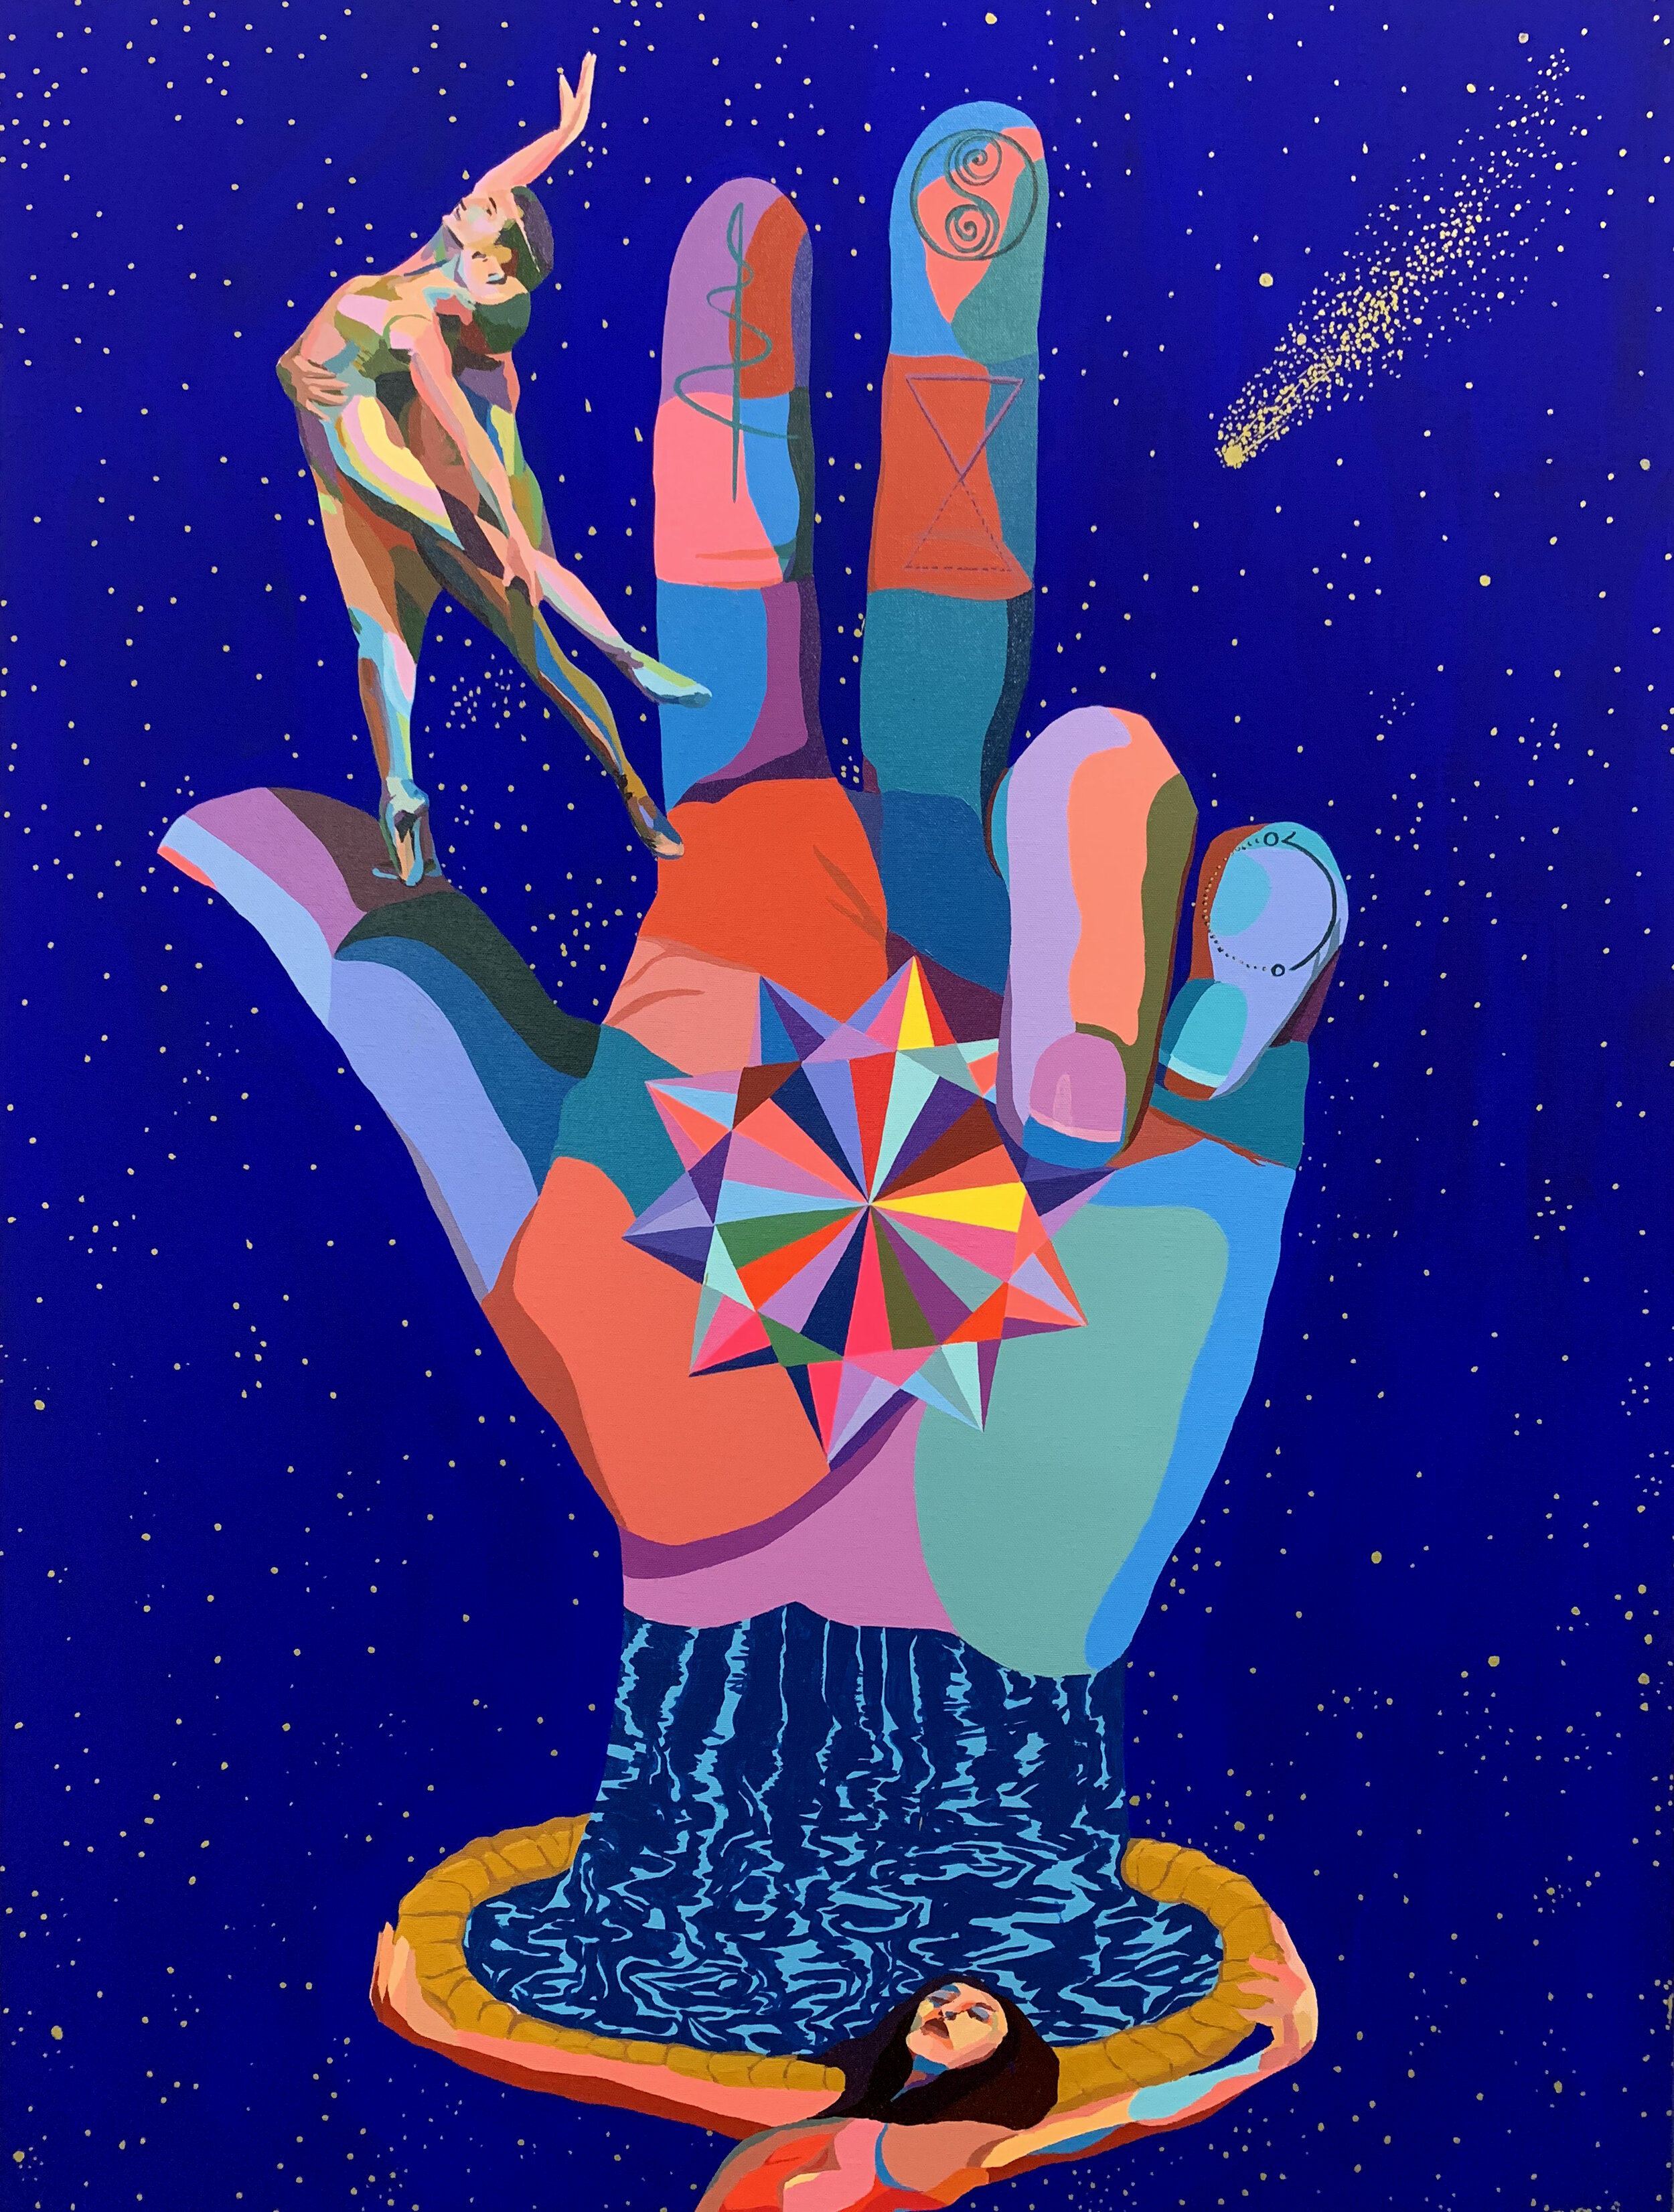 Divine Hand Dancing 40x30in acrylic and gouache on canvas 2019